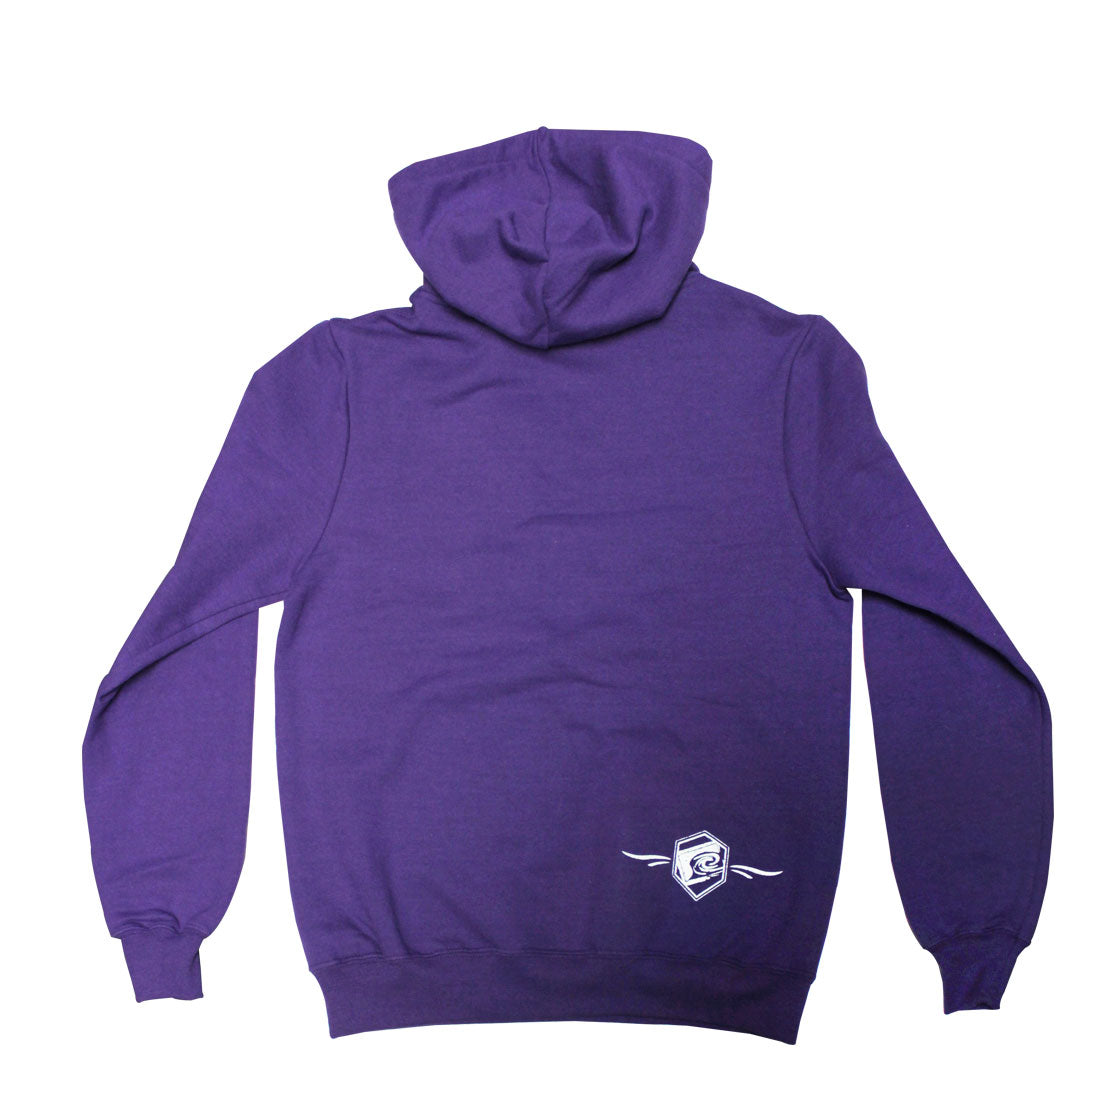 Appear Girls Pullover Sweatshirt in Purple - Back